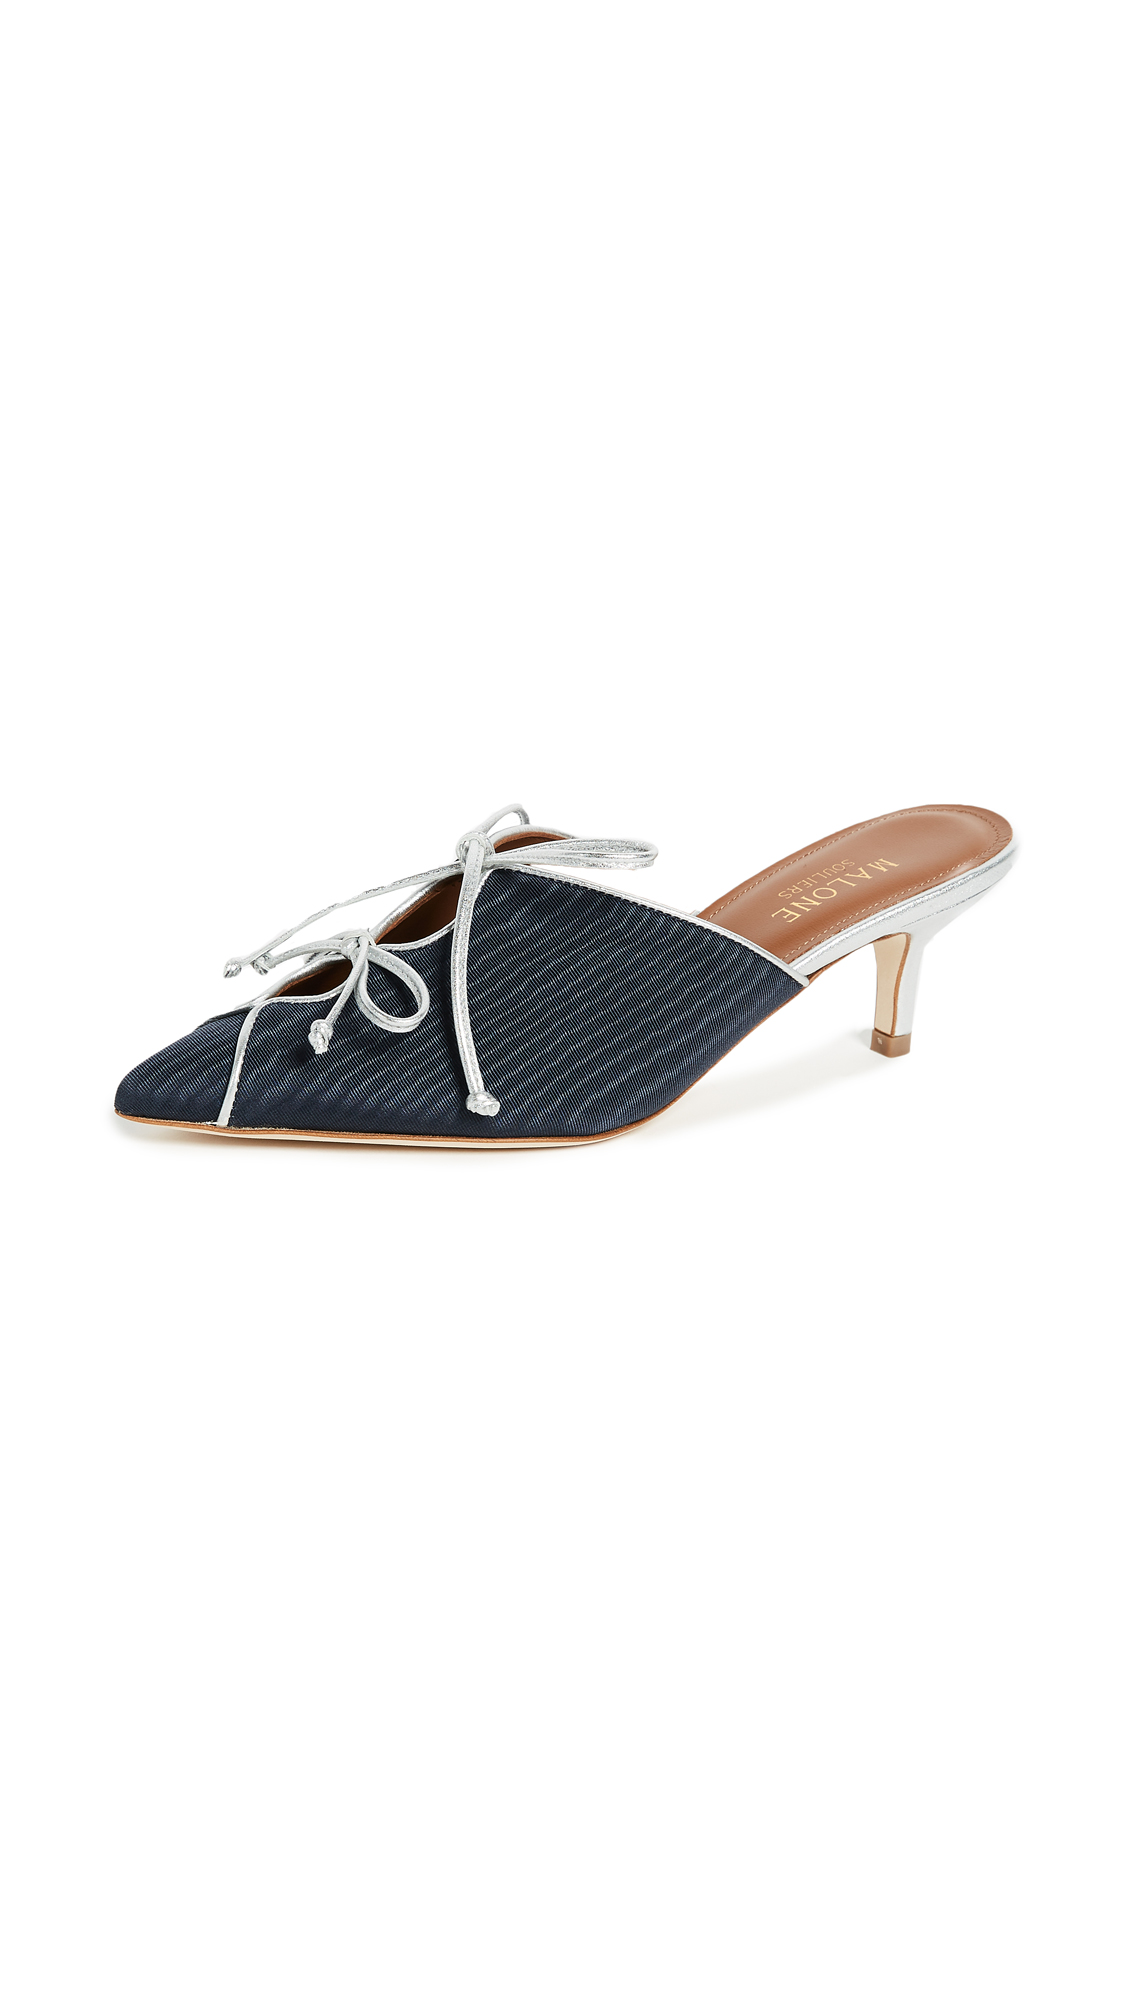 Malone Souliers Victoria Mules - Navy/Silver